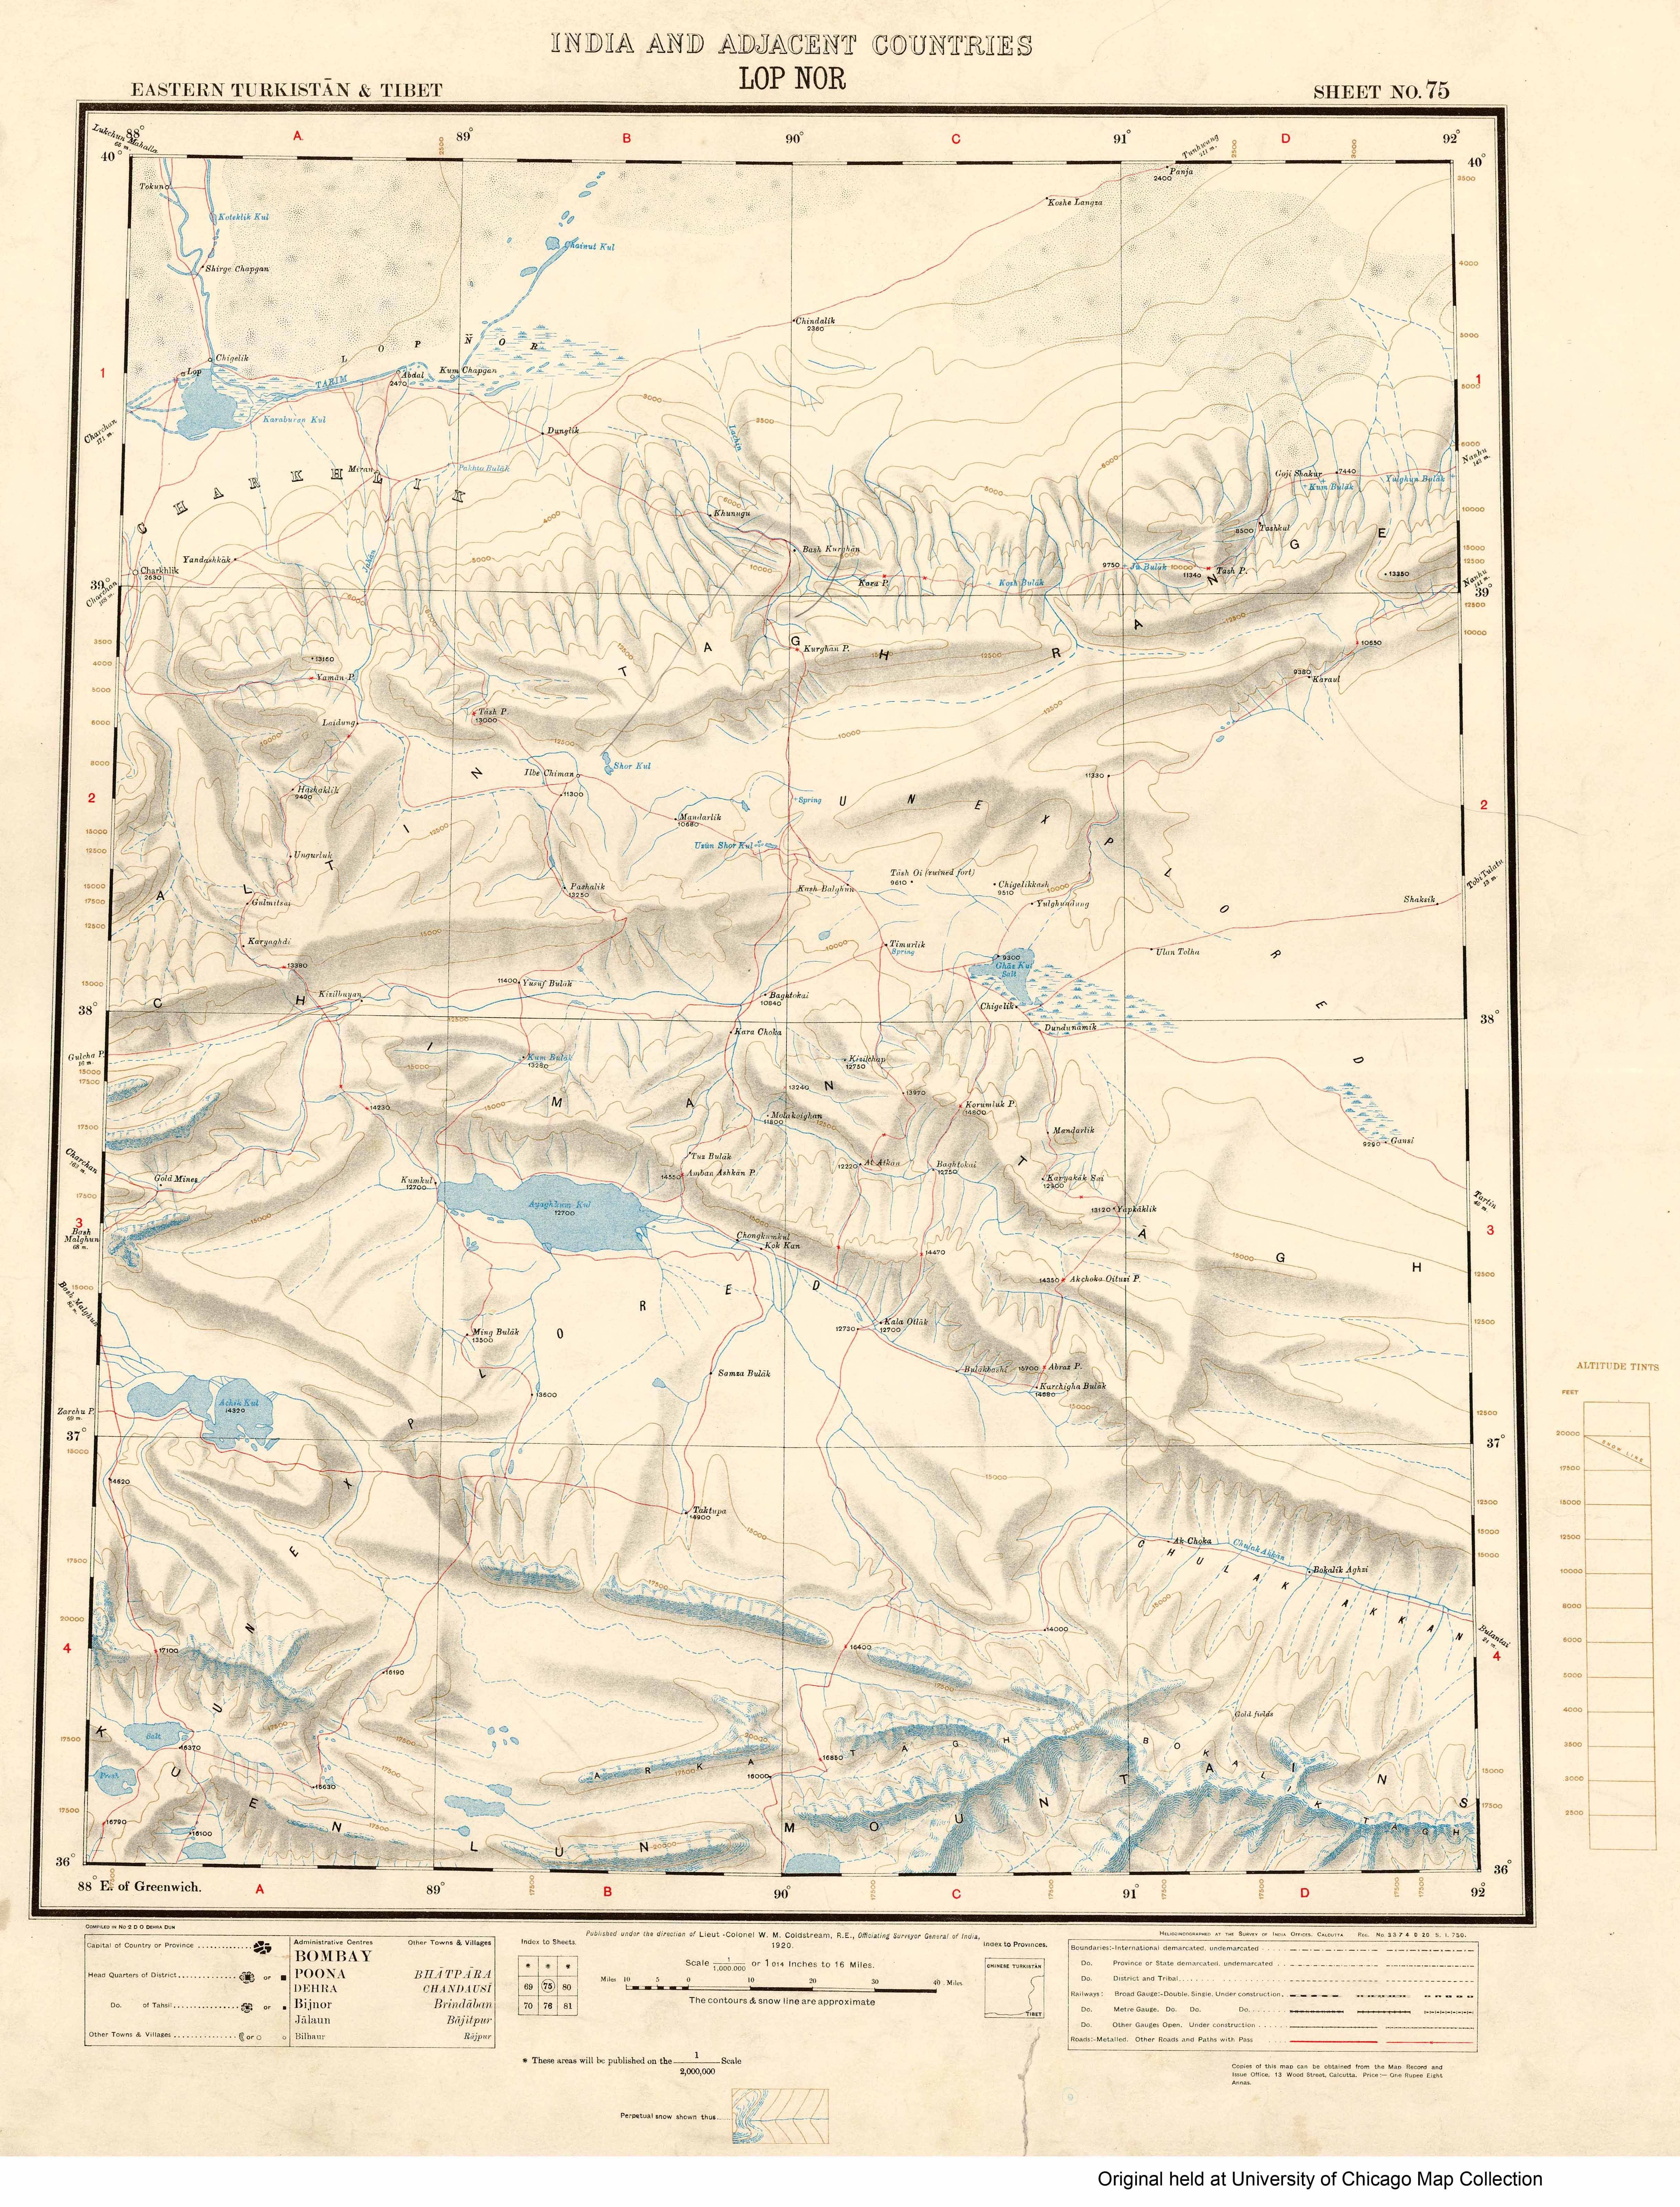 Map of Lop Nor (Taklamakan Desert) - India and its adjacent ... Taklimakan Desert Map on